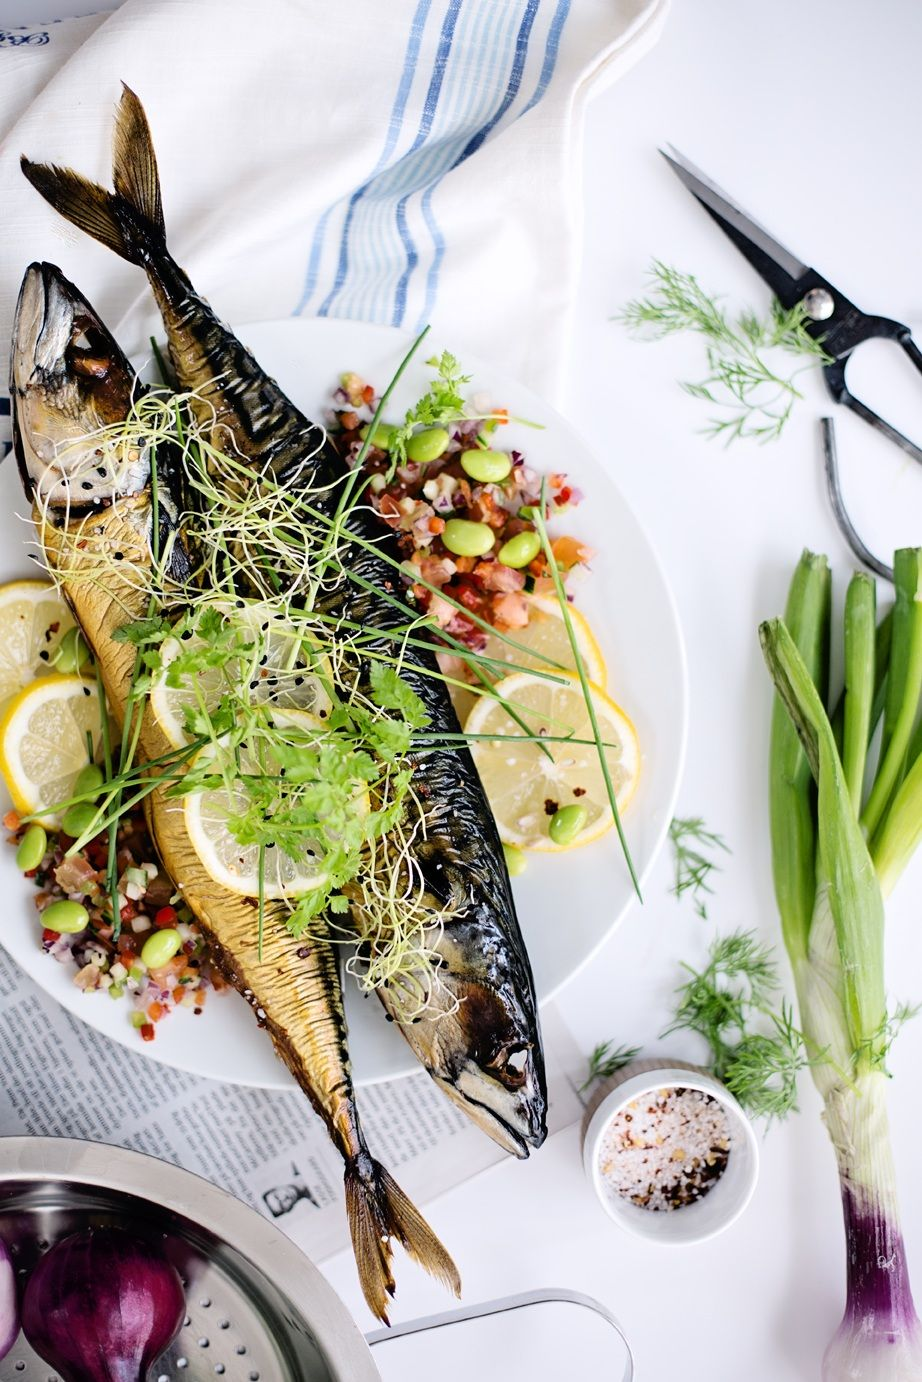 Nordic Seaside Lifestyle Christina Greve Nordic Recipe Scandinavian Food Food Photography Styling